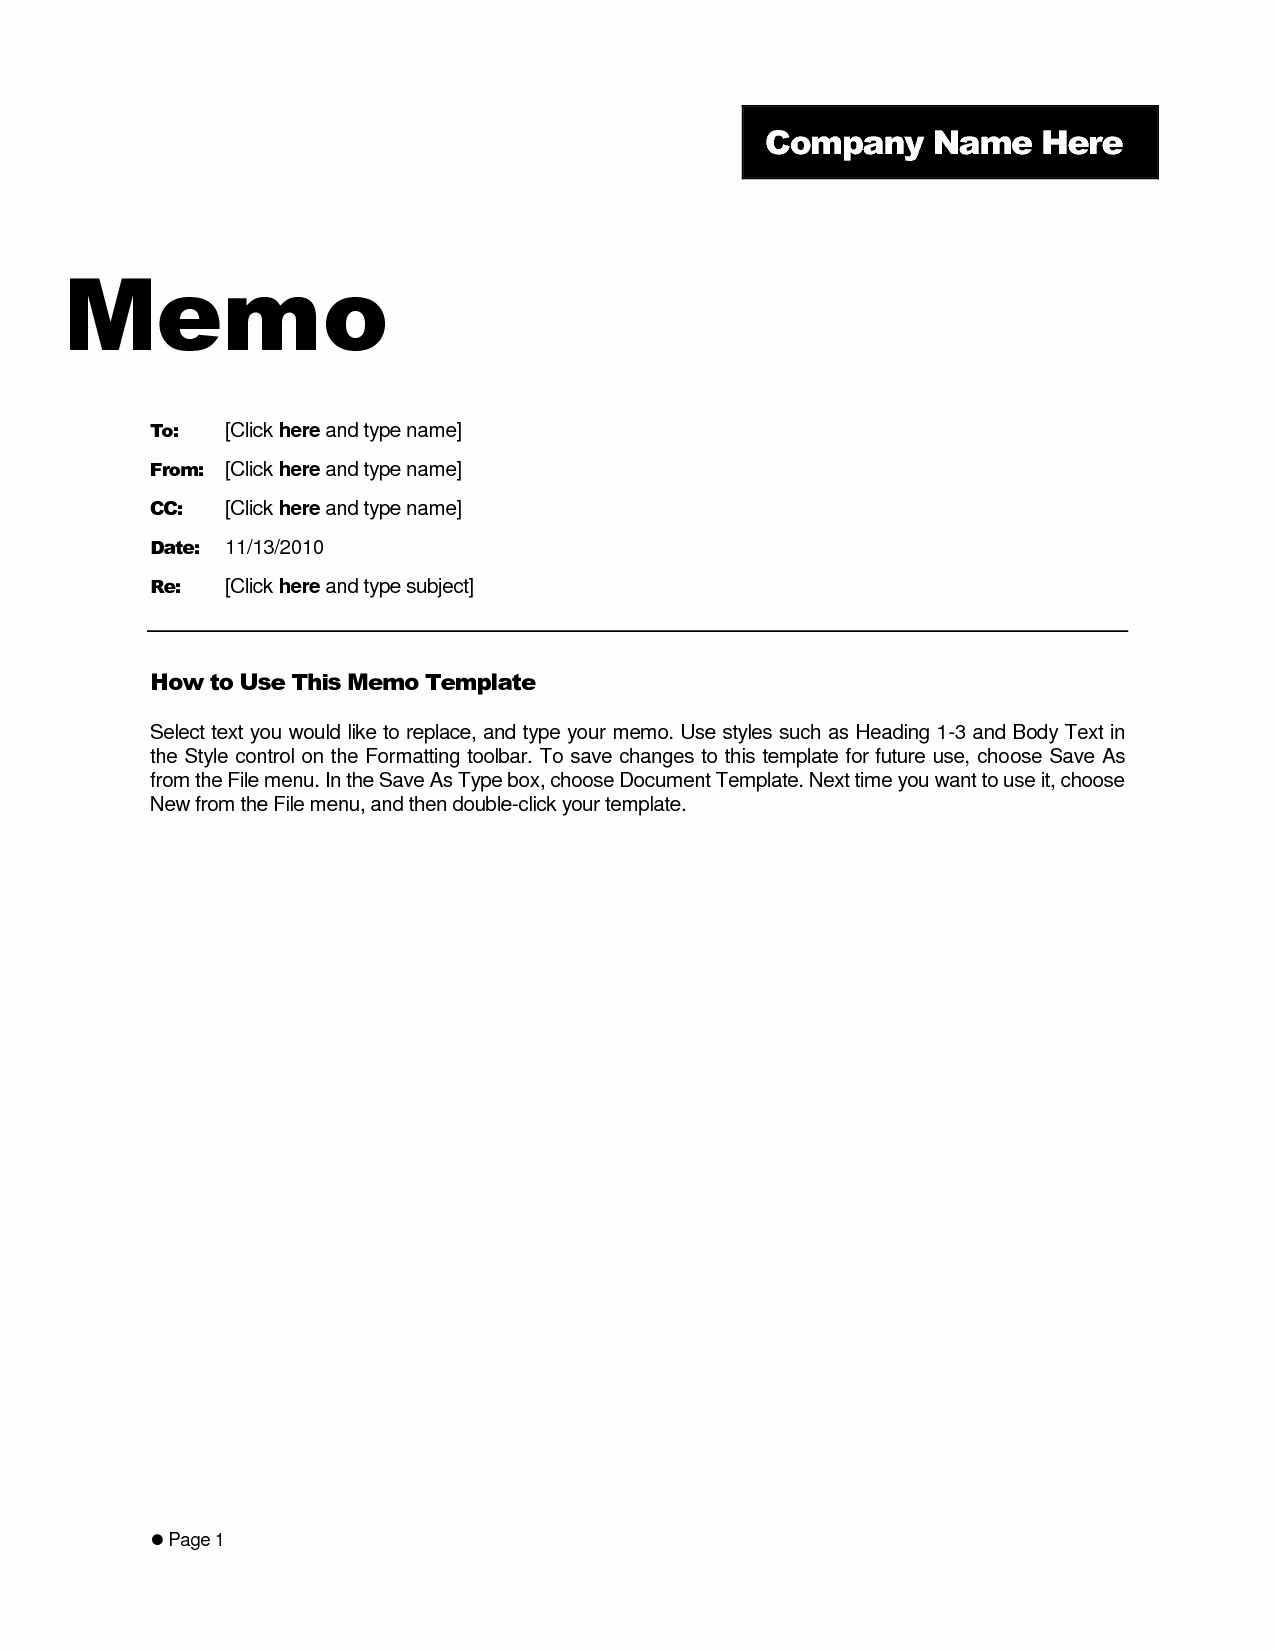 Free Memo Template for Word Inspirational Best S Of Free Memo Templates Word Document